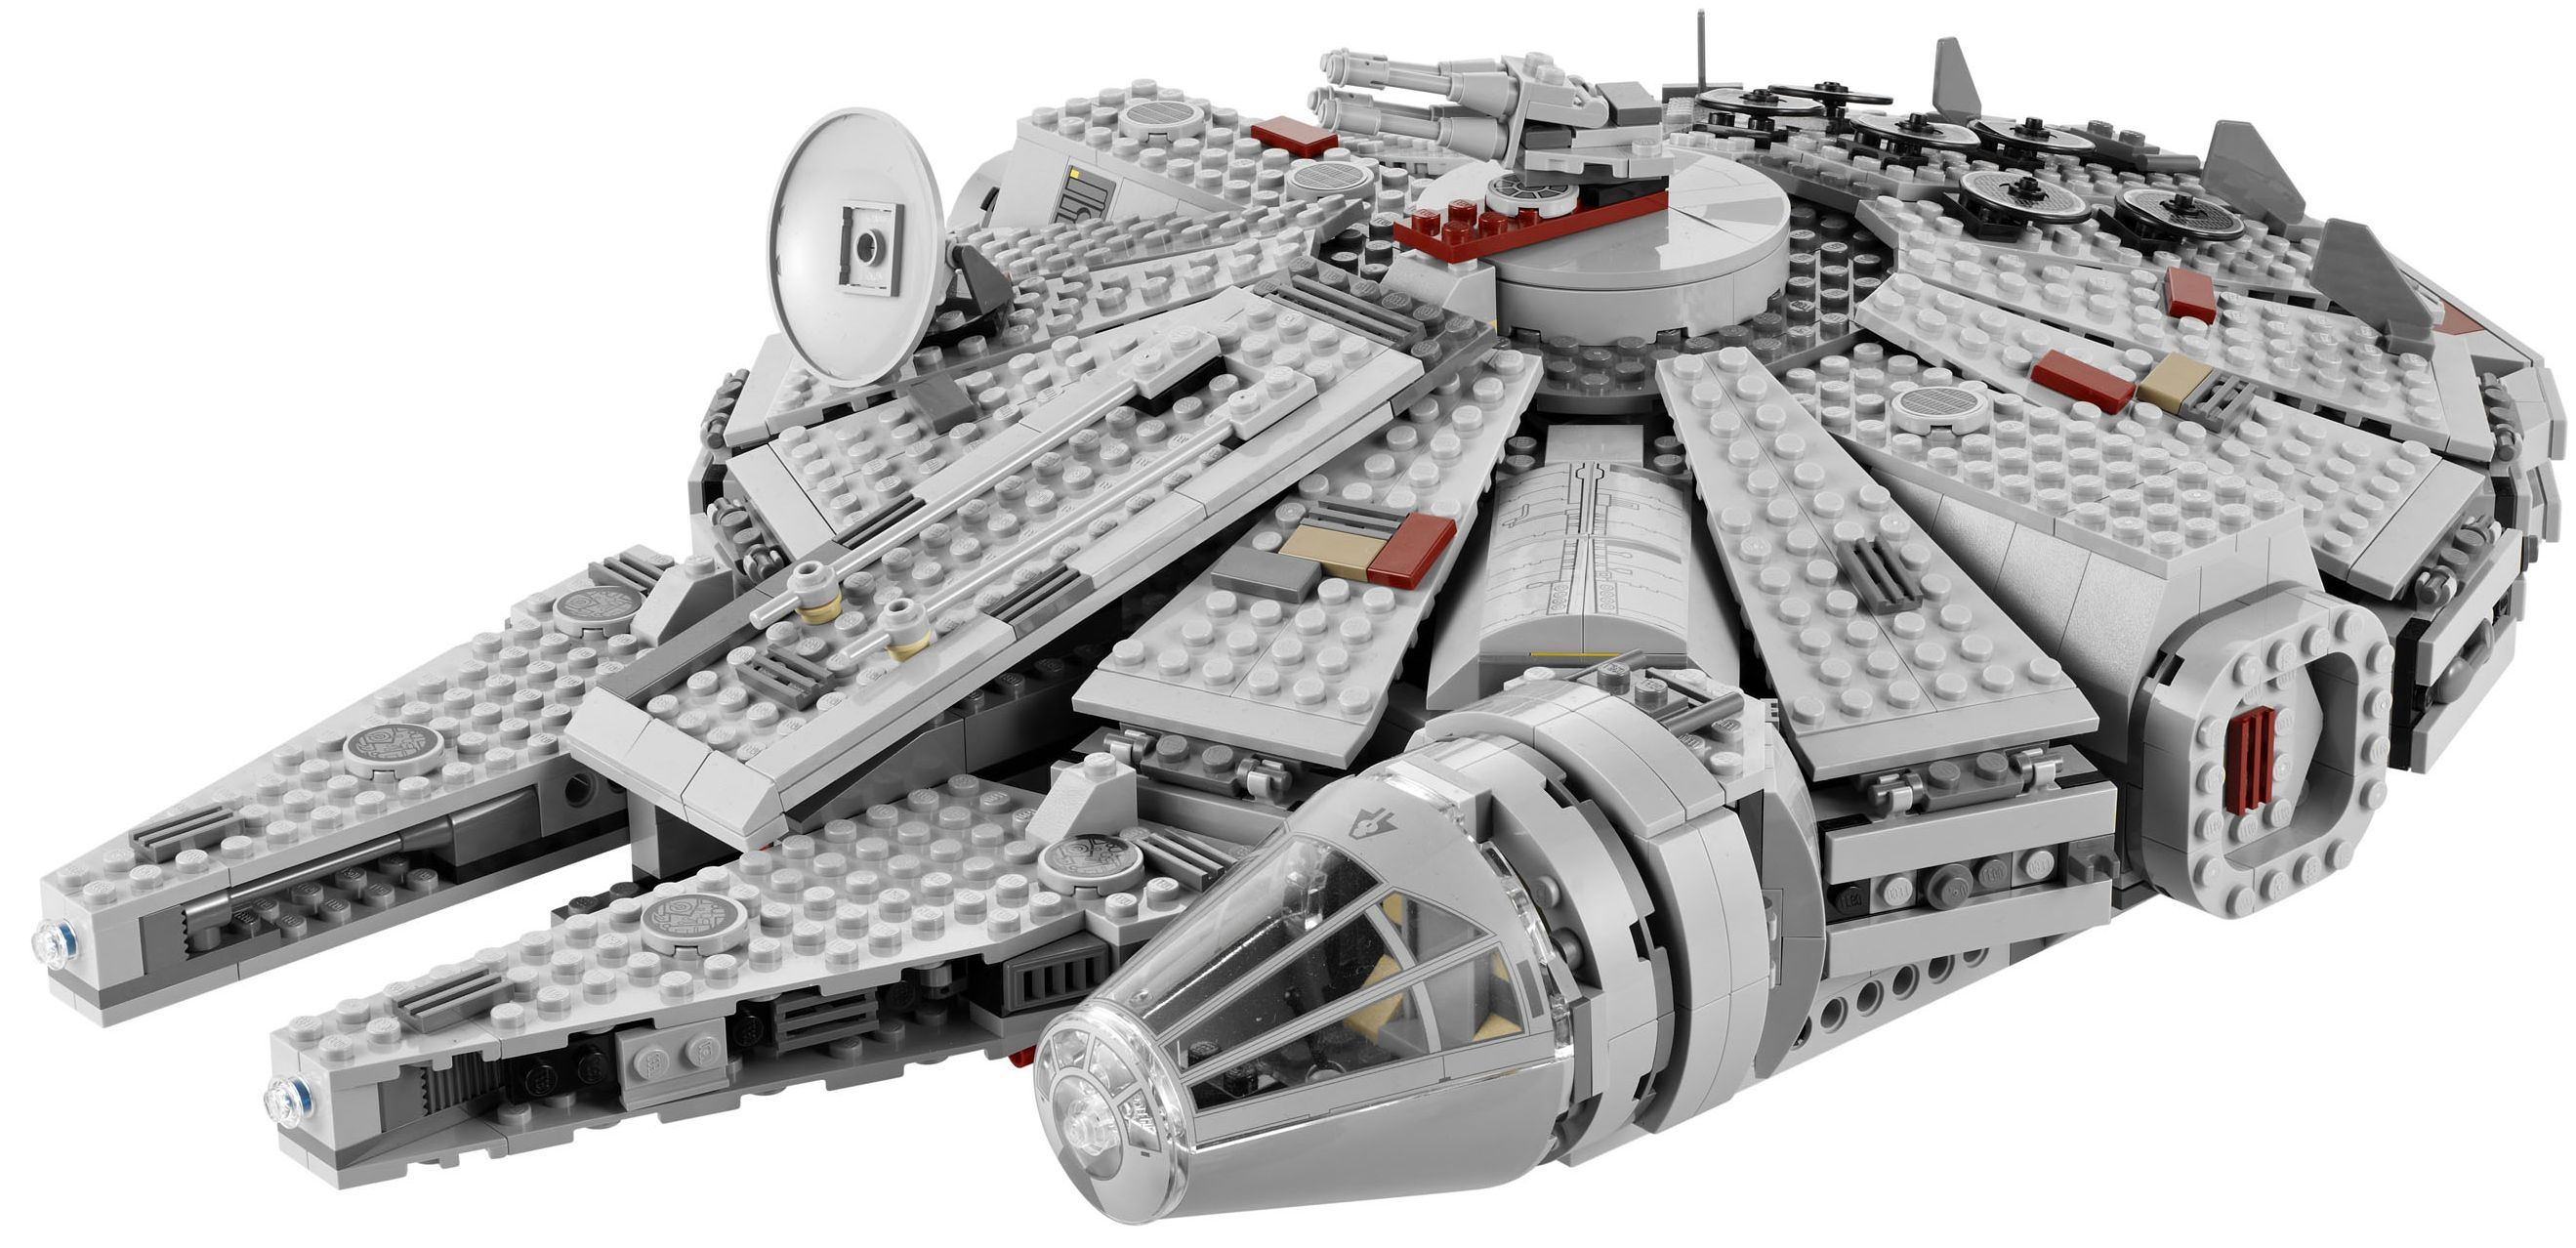 LEGO Star Wars Millennium Falcon – the most highly sought after toy ...